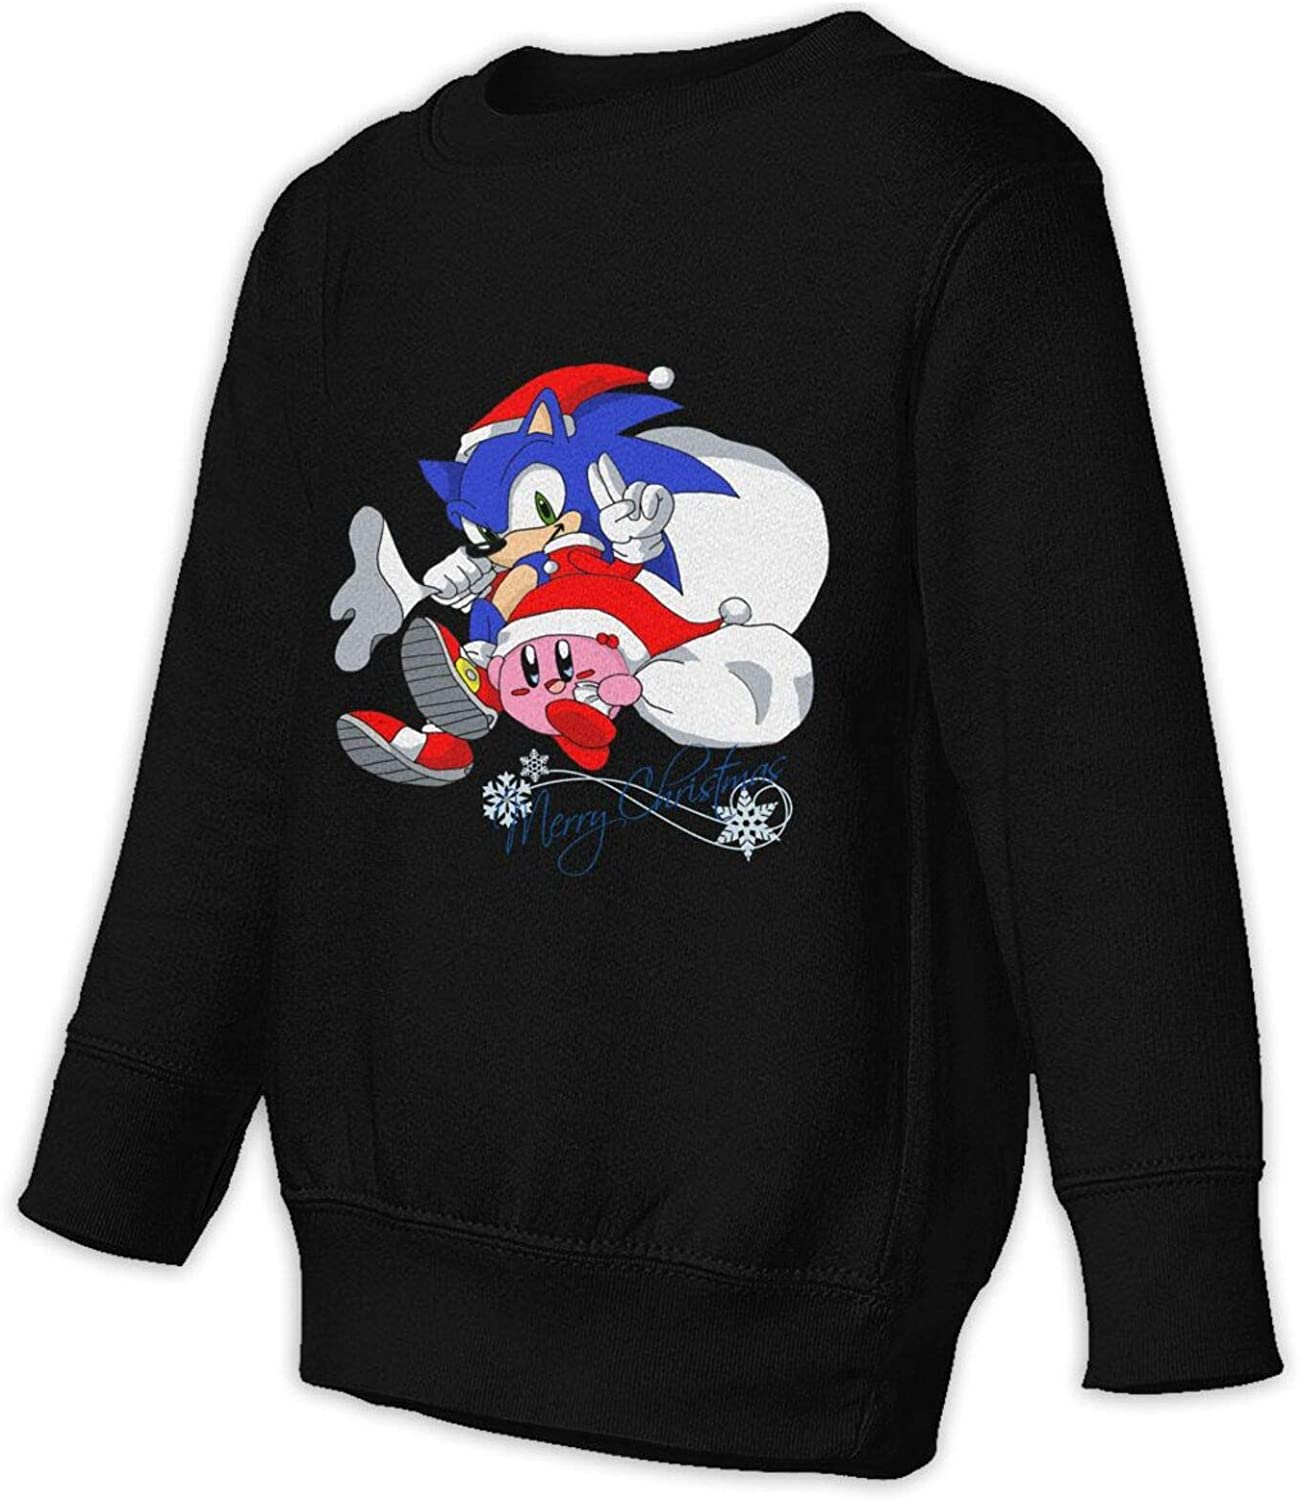 Sonic and Kirby Merry Christmas Child Crew Neck Pullover Long Sleeve Sweater Hoodies Pullovers Sweatshirts Boys and Girl